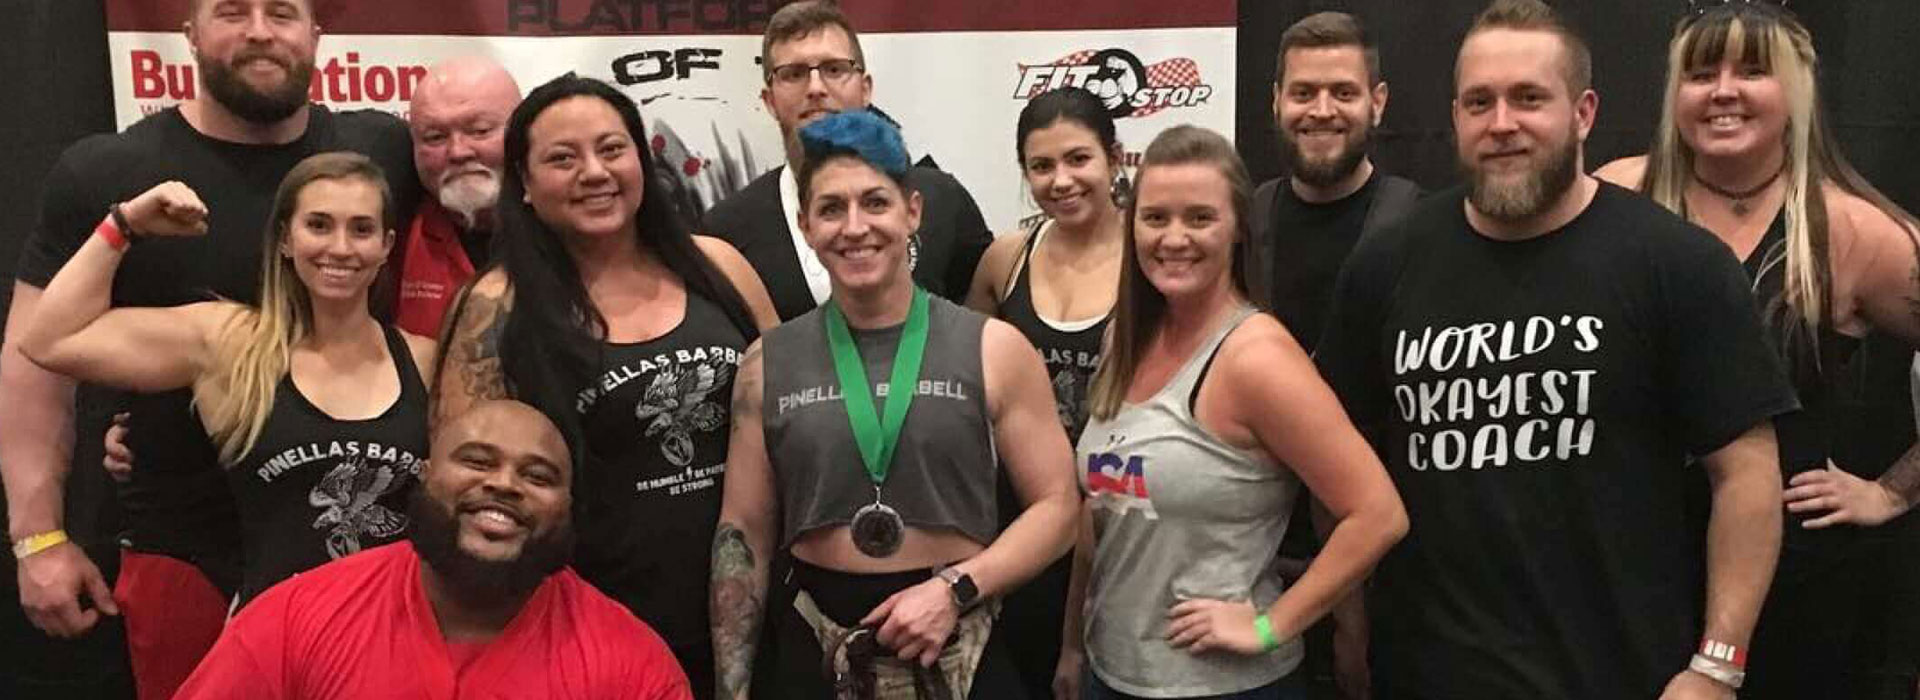 Top 5 Best Gyms To Join in Pinellas Park FL, Top 5 Best Gyms To Join near St Petersburg FL, Top 5 Best Gyms To Join near Clearwater FL, Top 5 Best Gyms To Join near Tampa Bay FL